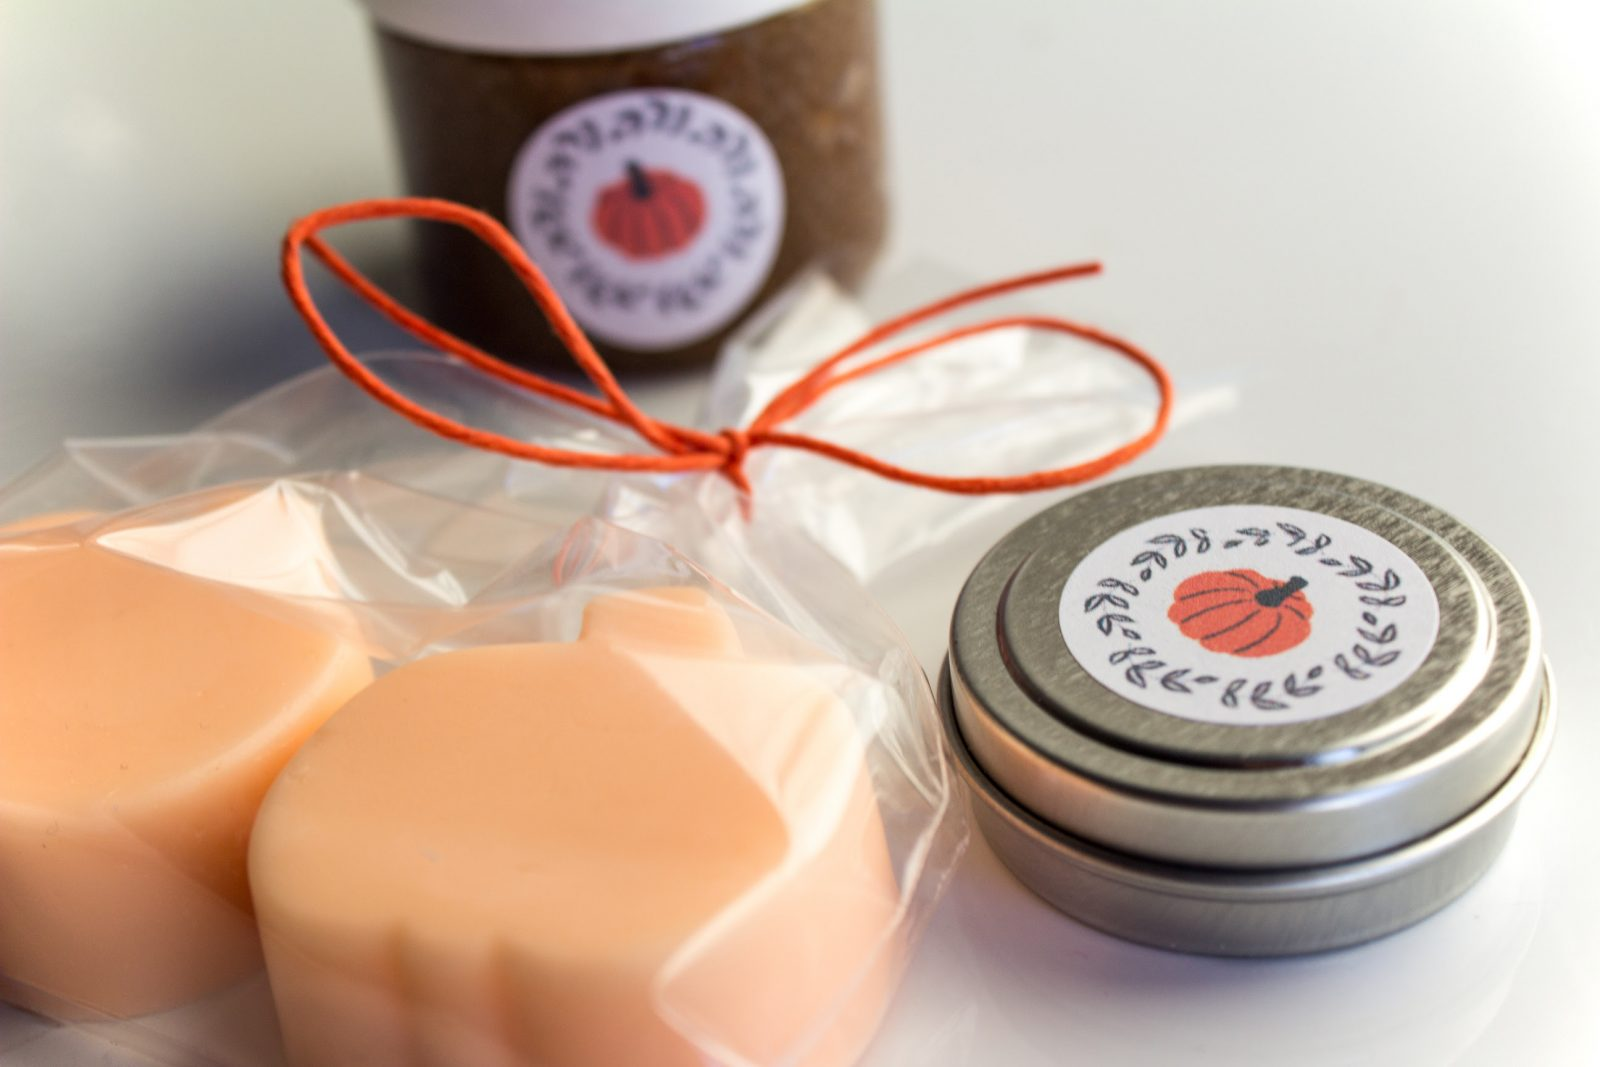 Happee Body Pumpkin Spice Collection Gift Set